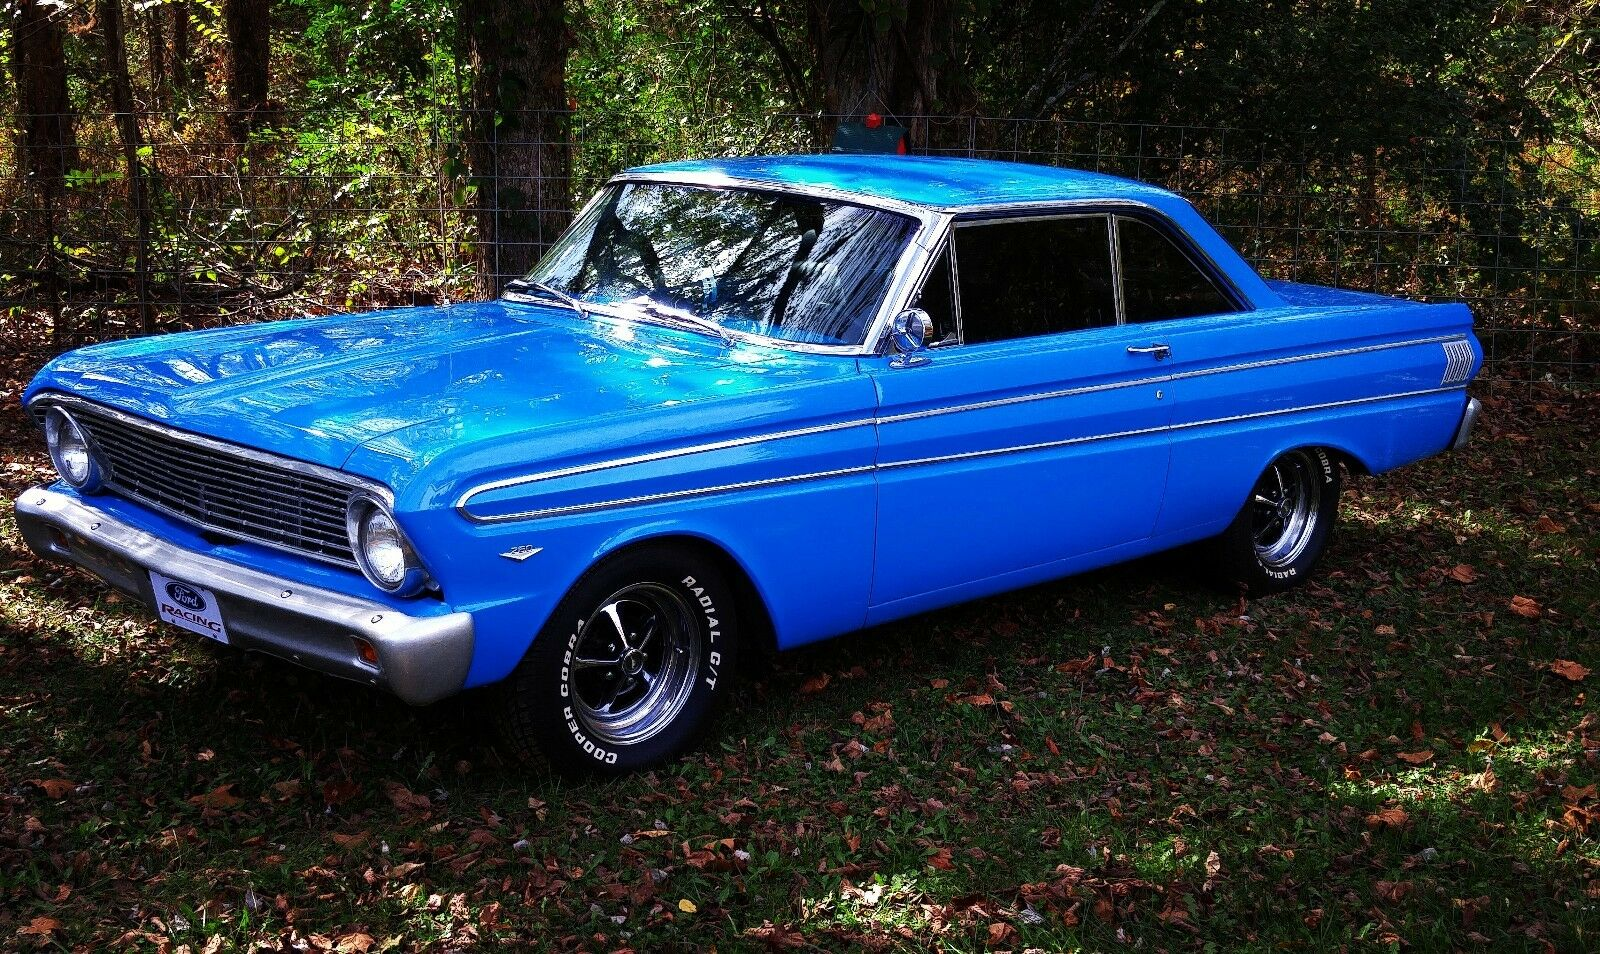 1964 ford falcon used ford falcon for sale in. Black Bedroom Furniture Sets. Home Design Ideas